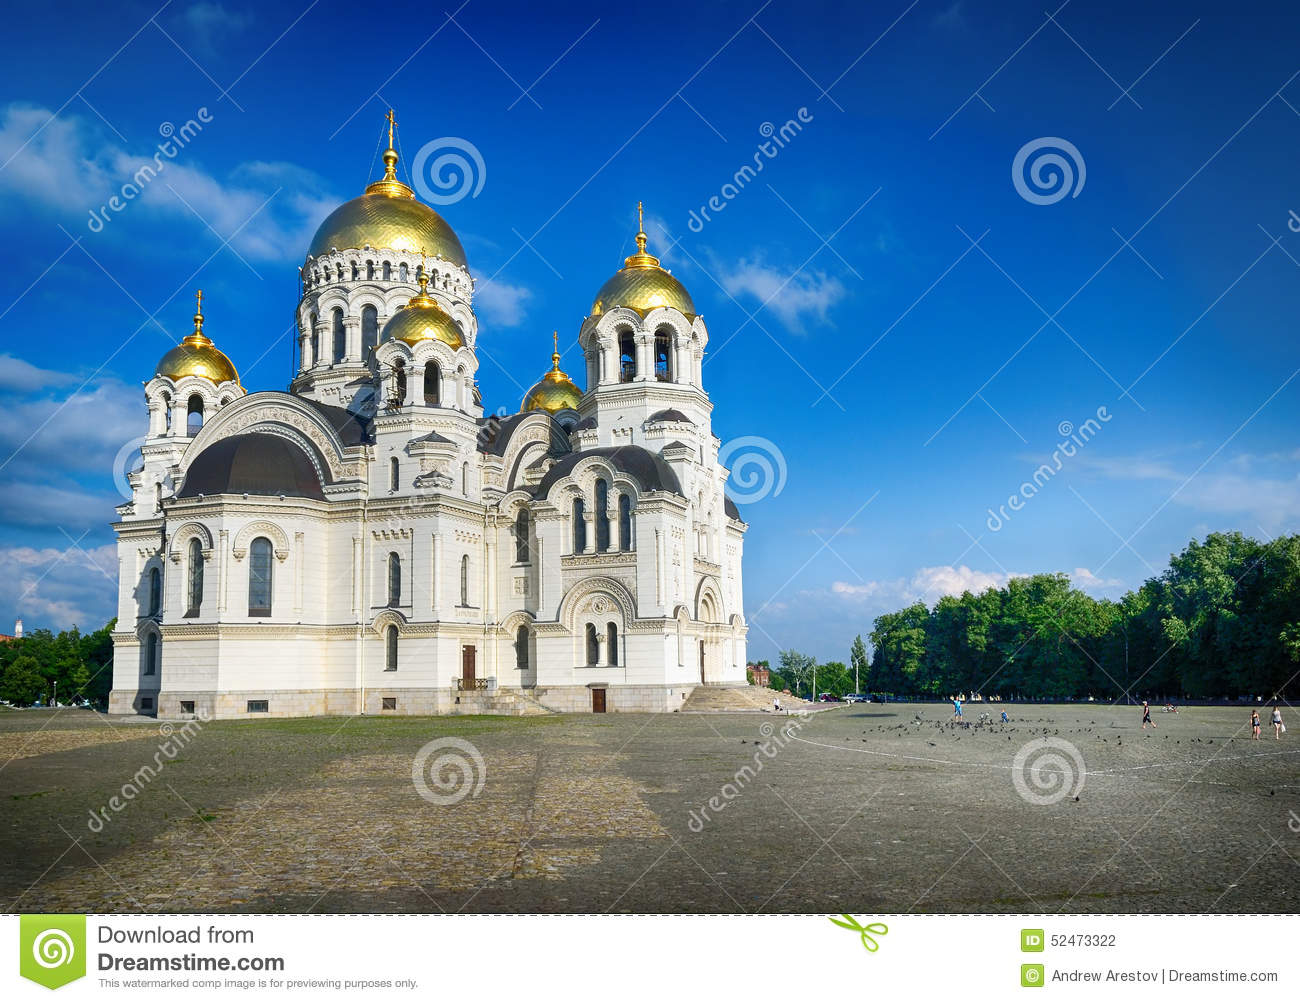 Ascension Cathedral Novocherkassk: history, description and interesting facts 86